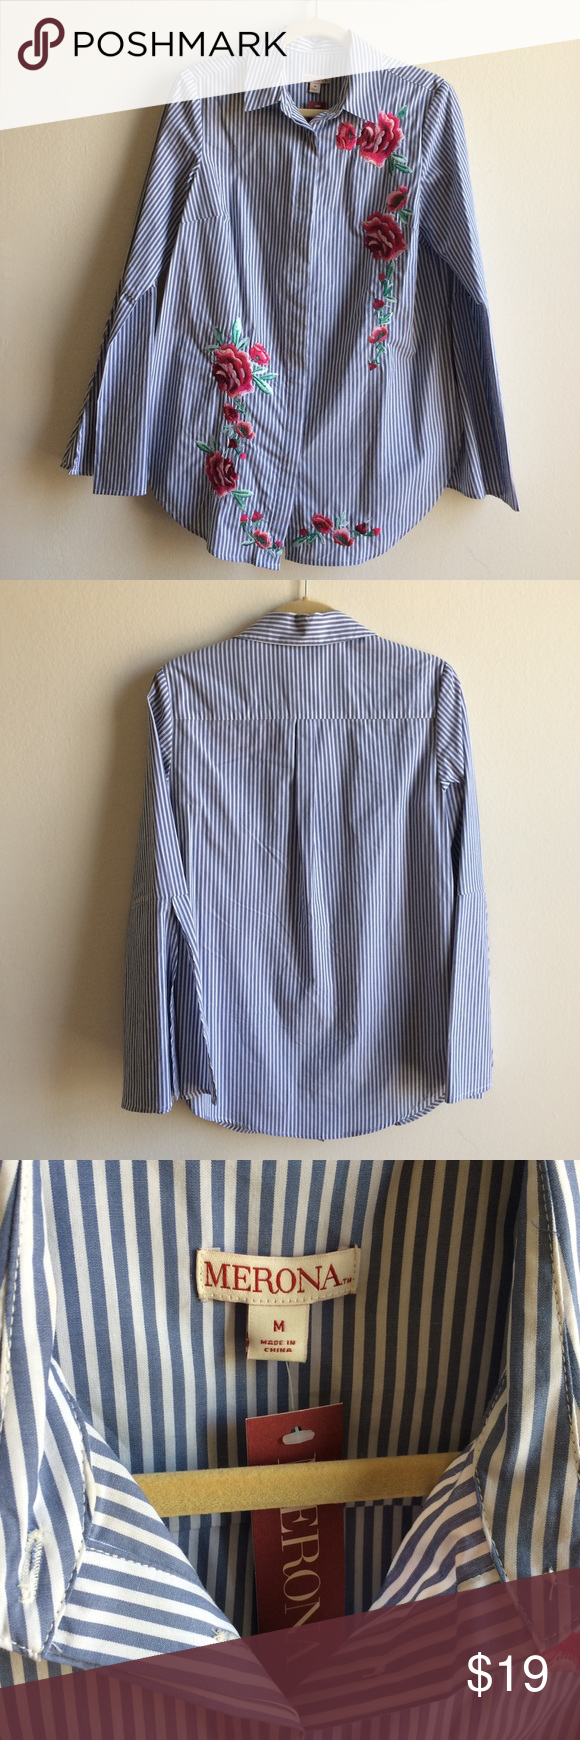 7f2a1cab630cc2 Merona Embroidered Blue Button Down Shirt Blue   white pinstripe blouse  features red   pink floral